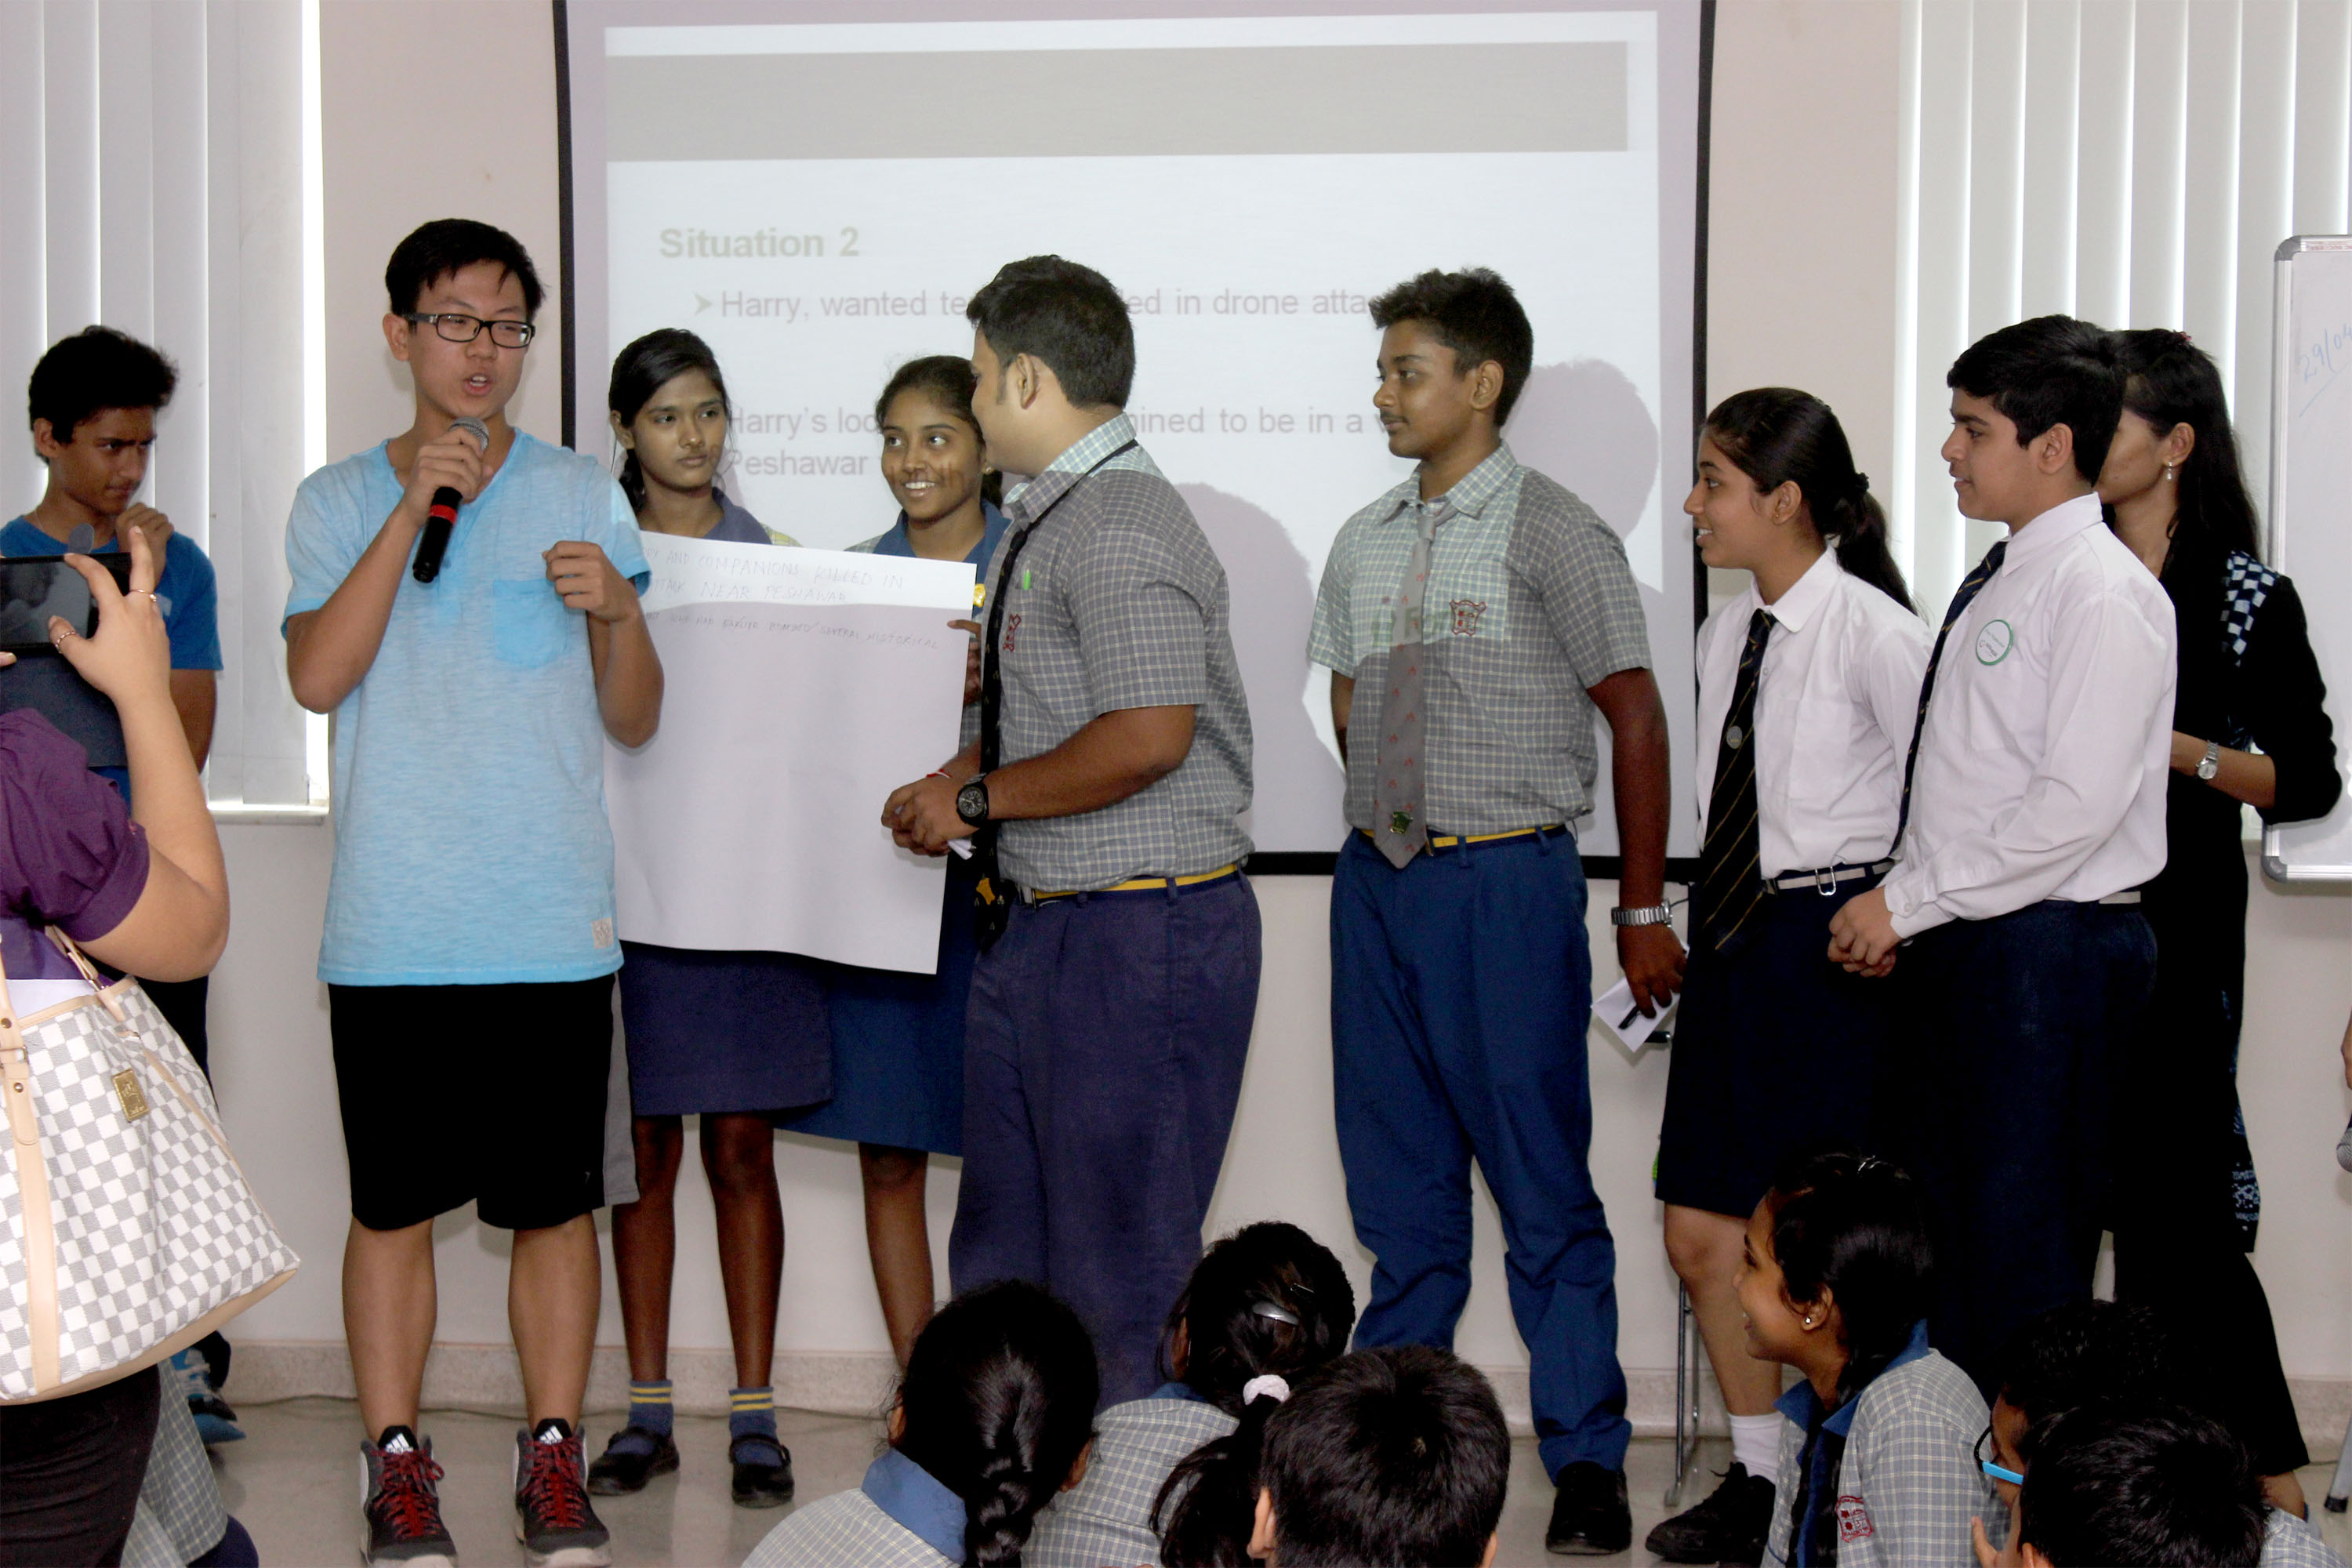 Students during Pro-social Peer Moderator Program interactive session